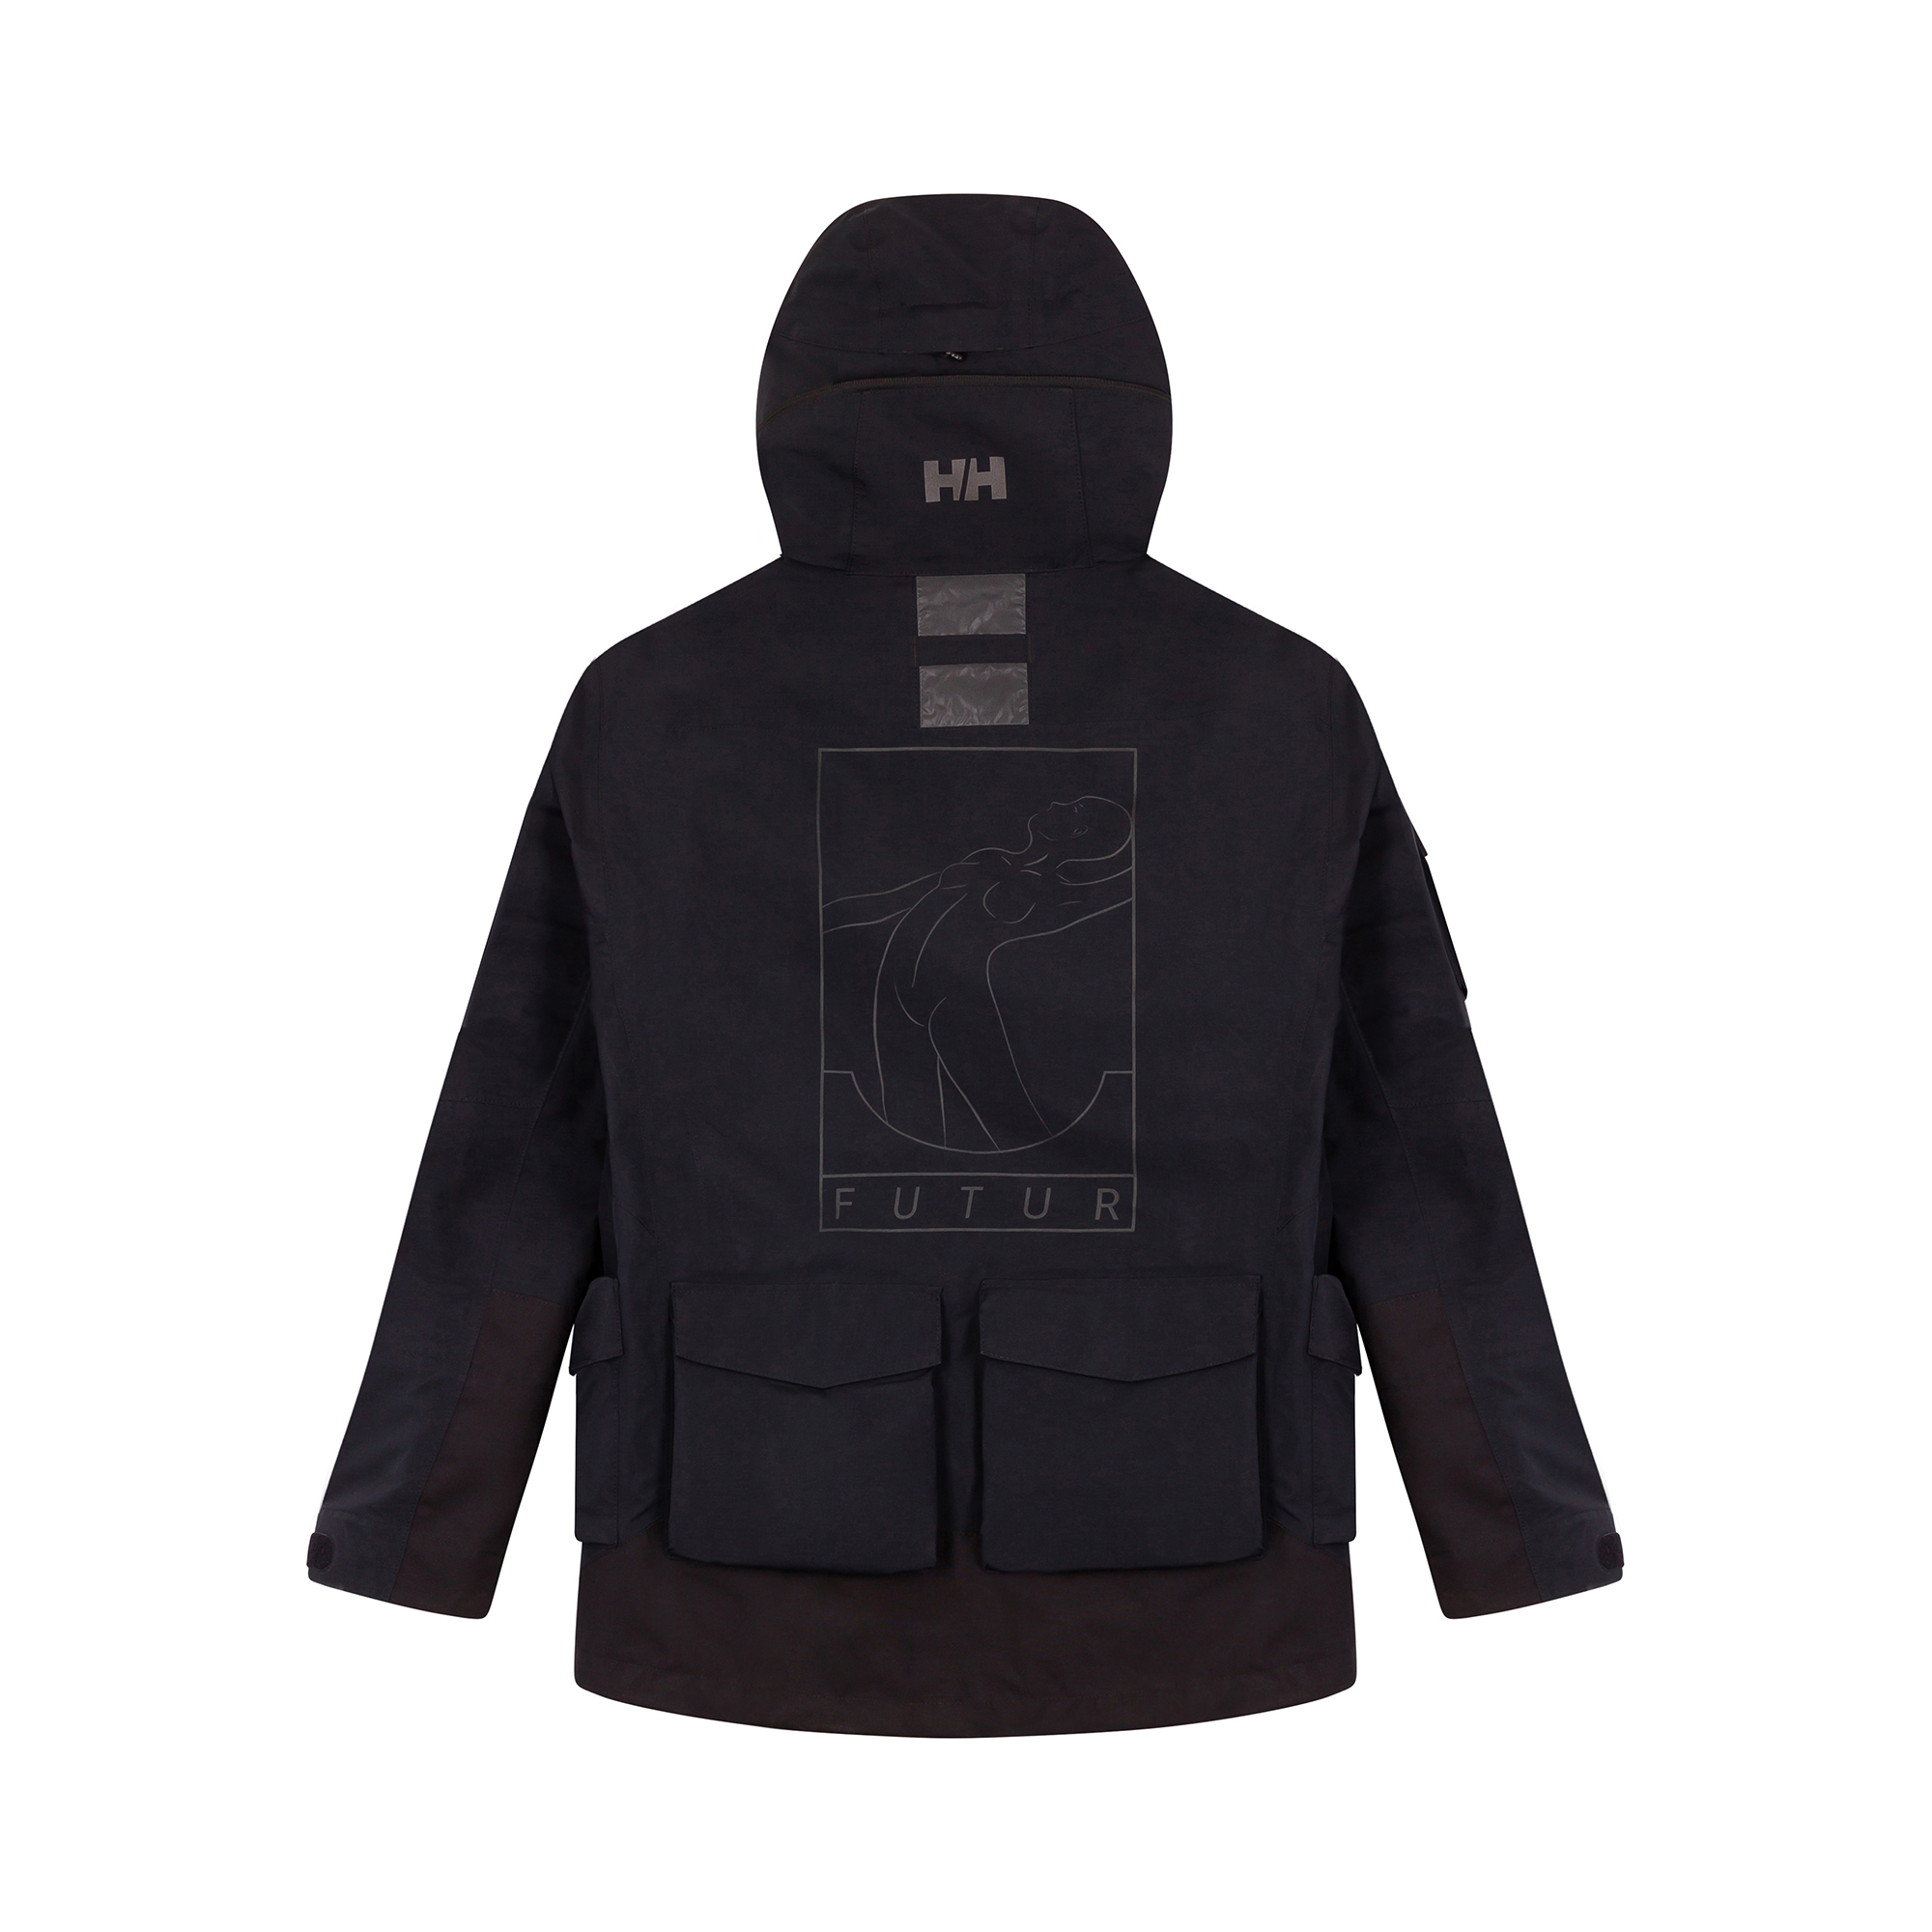 HELLY HANSEN X FUTUR - JACKET - BACK